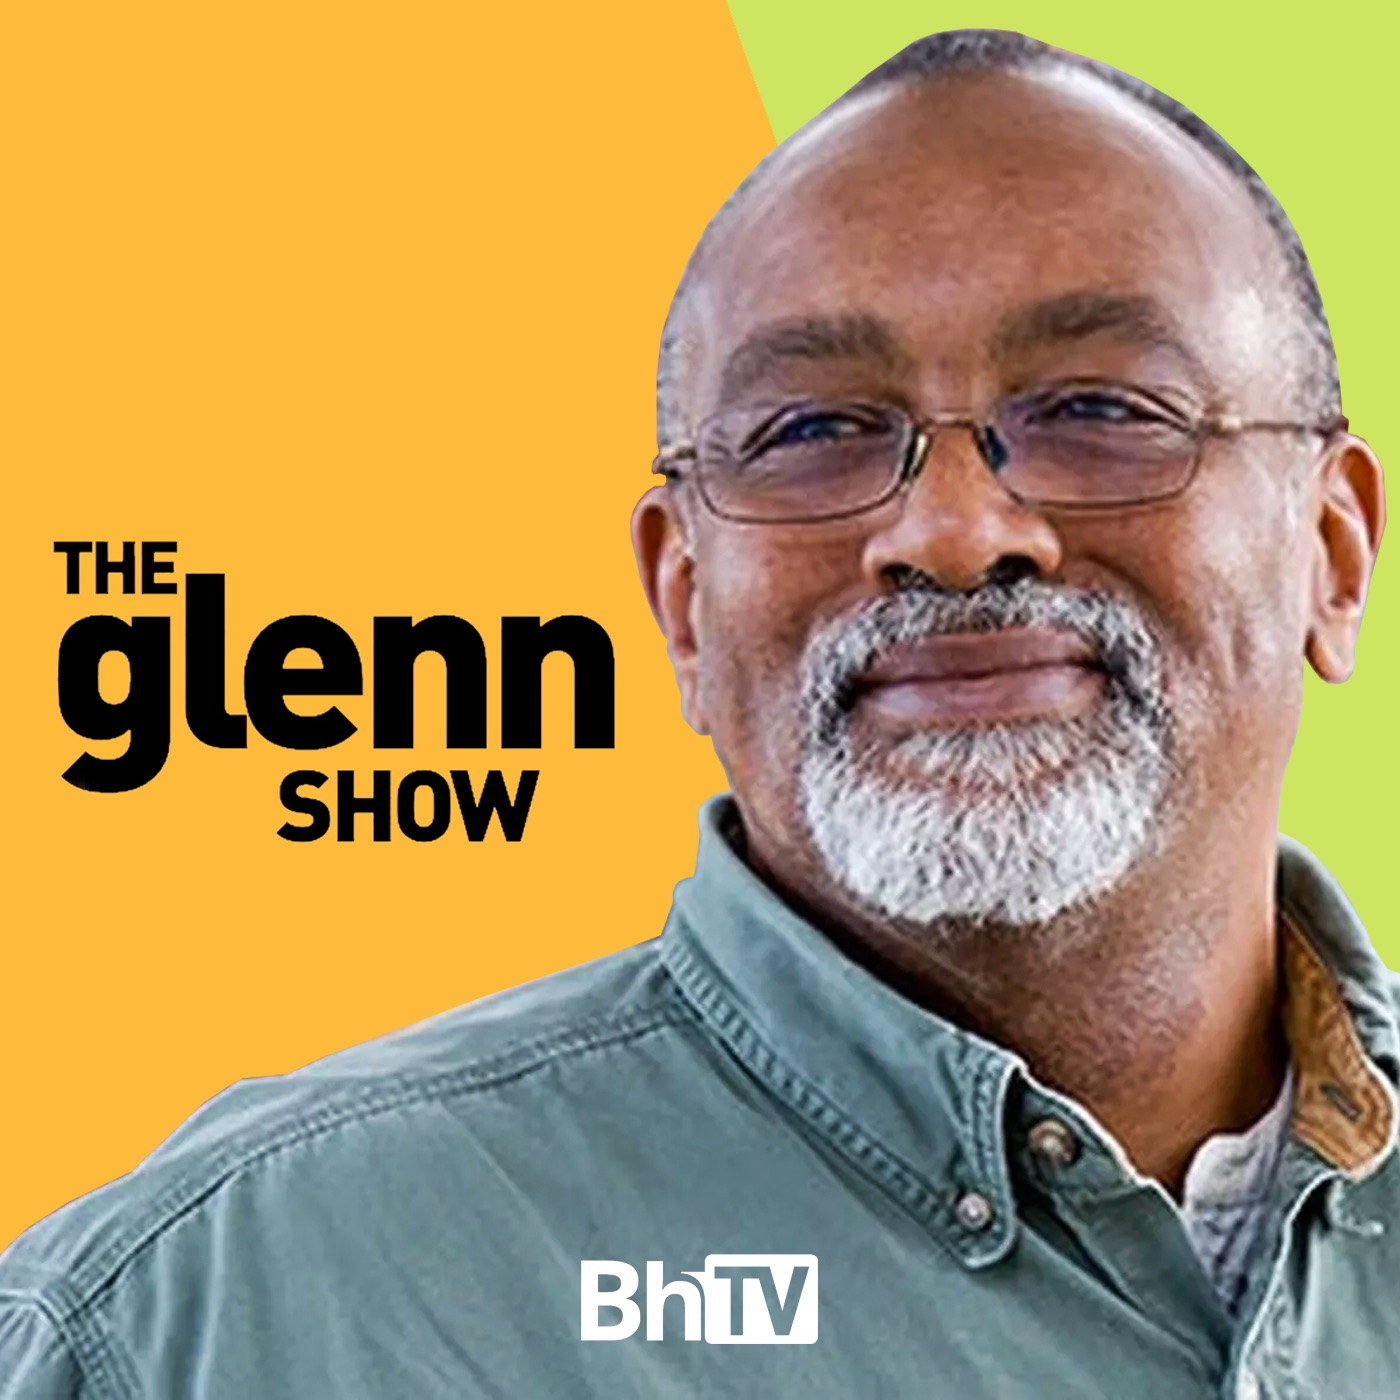 BhTV: The Glenn Show (video)